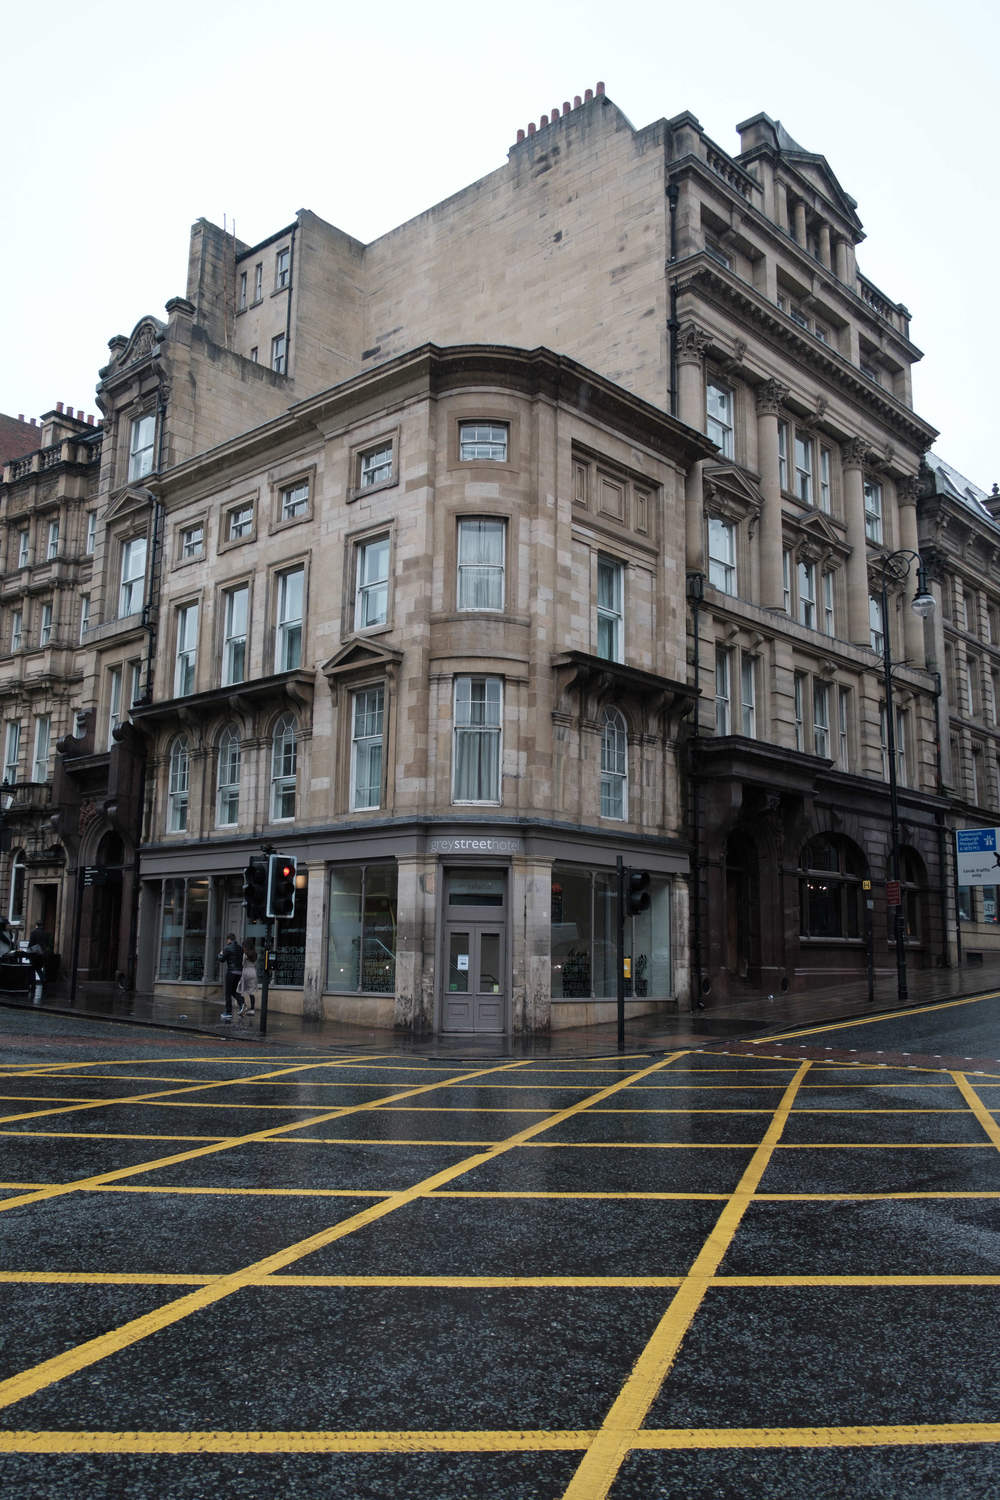 Grey Street Hotel wedding venue in the heart of Newcastle upon Tyne